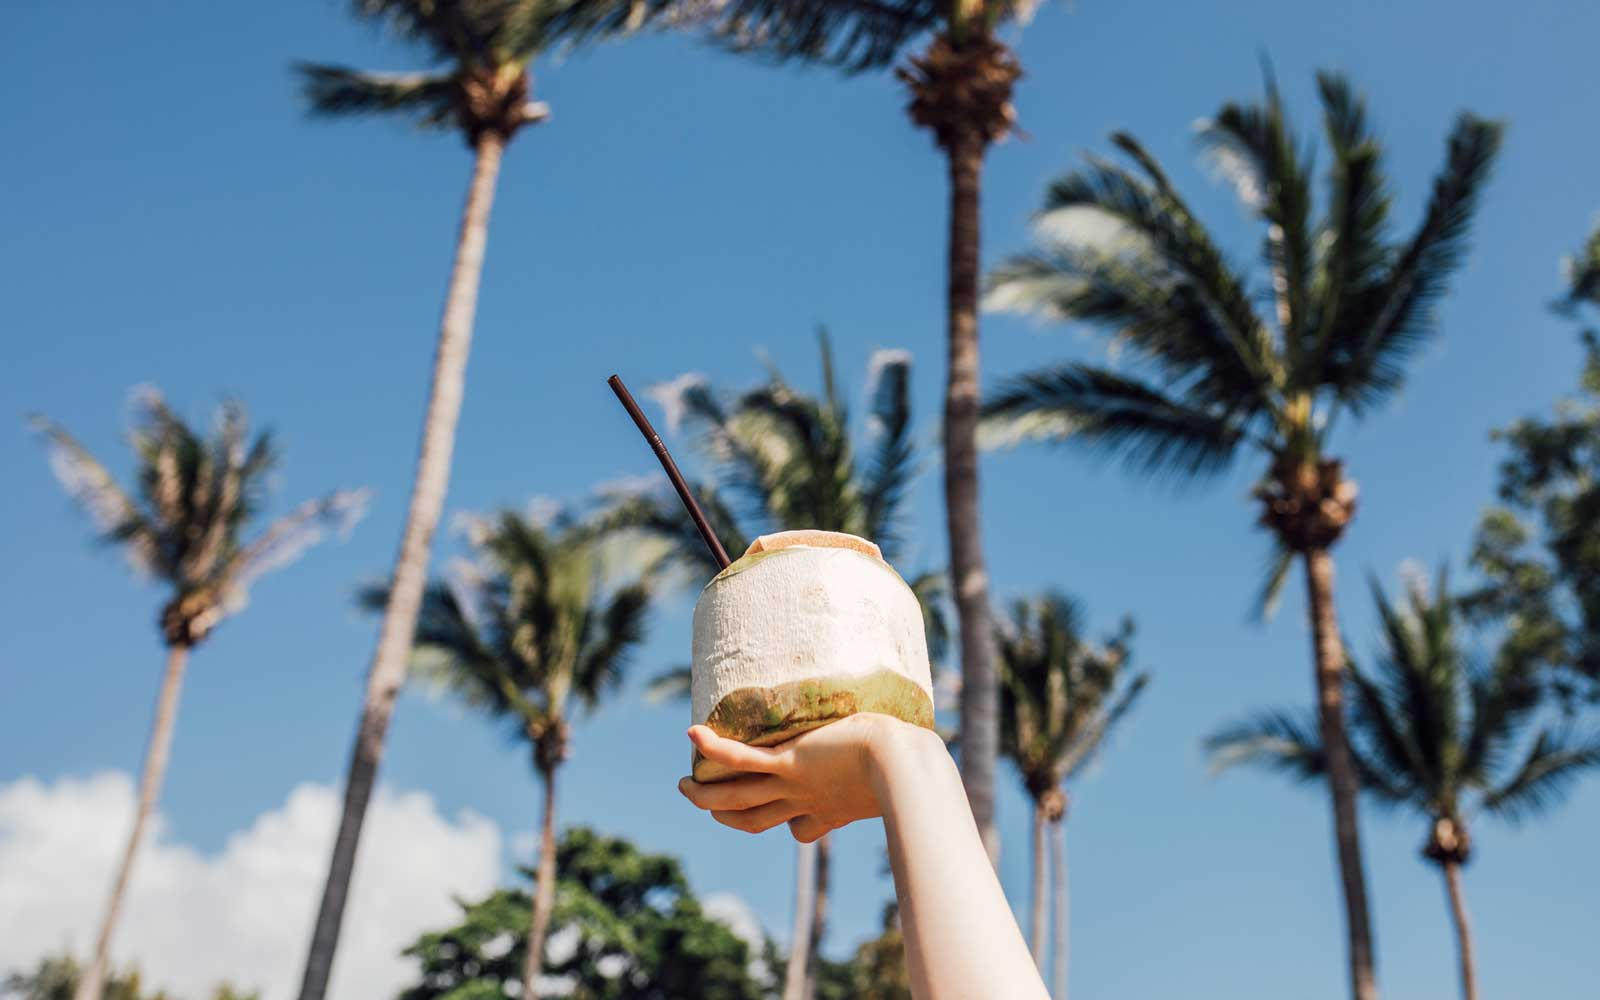 Coconut Milk and Palm Trees